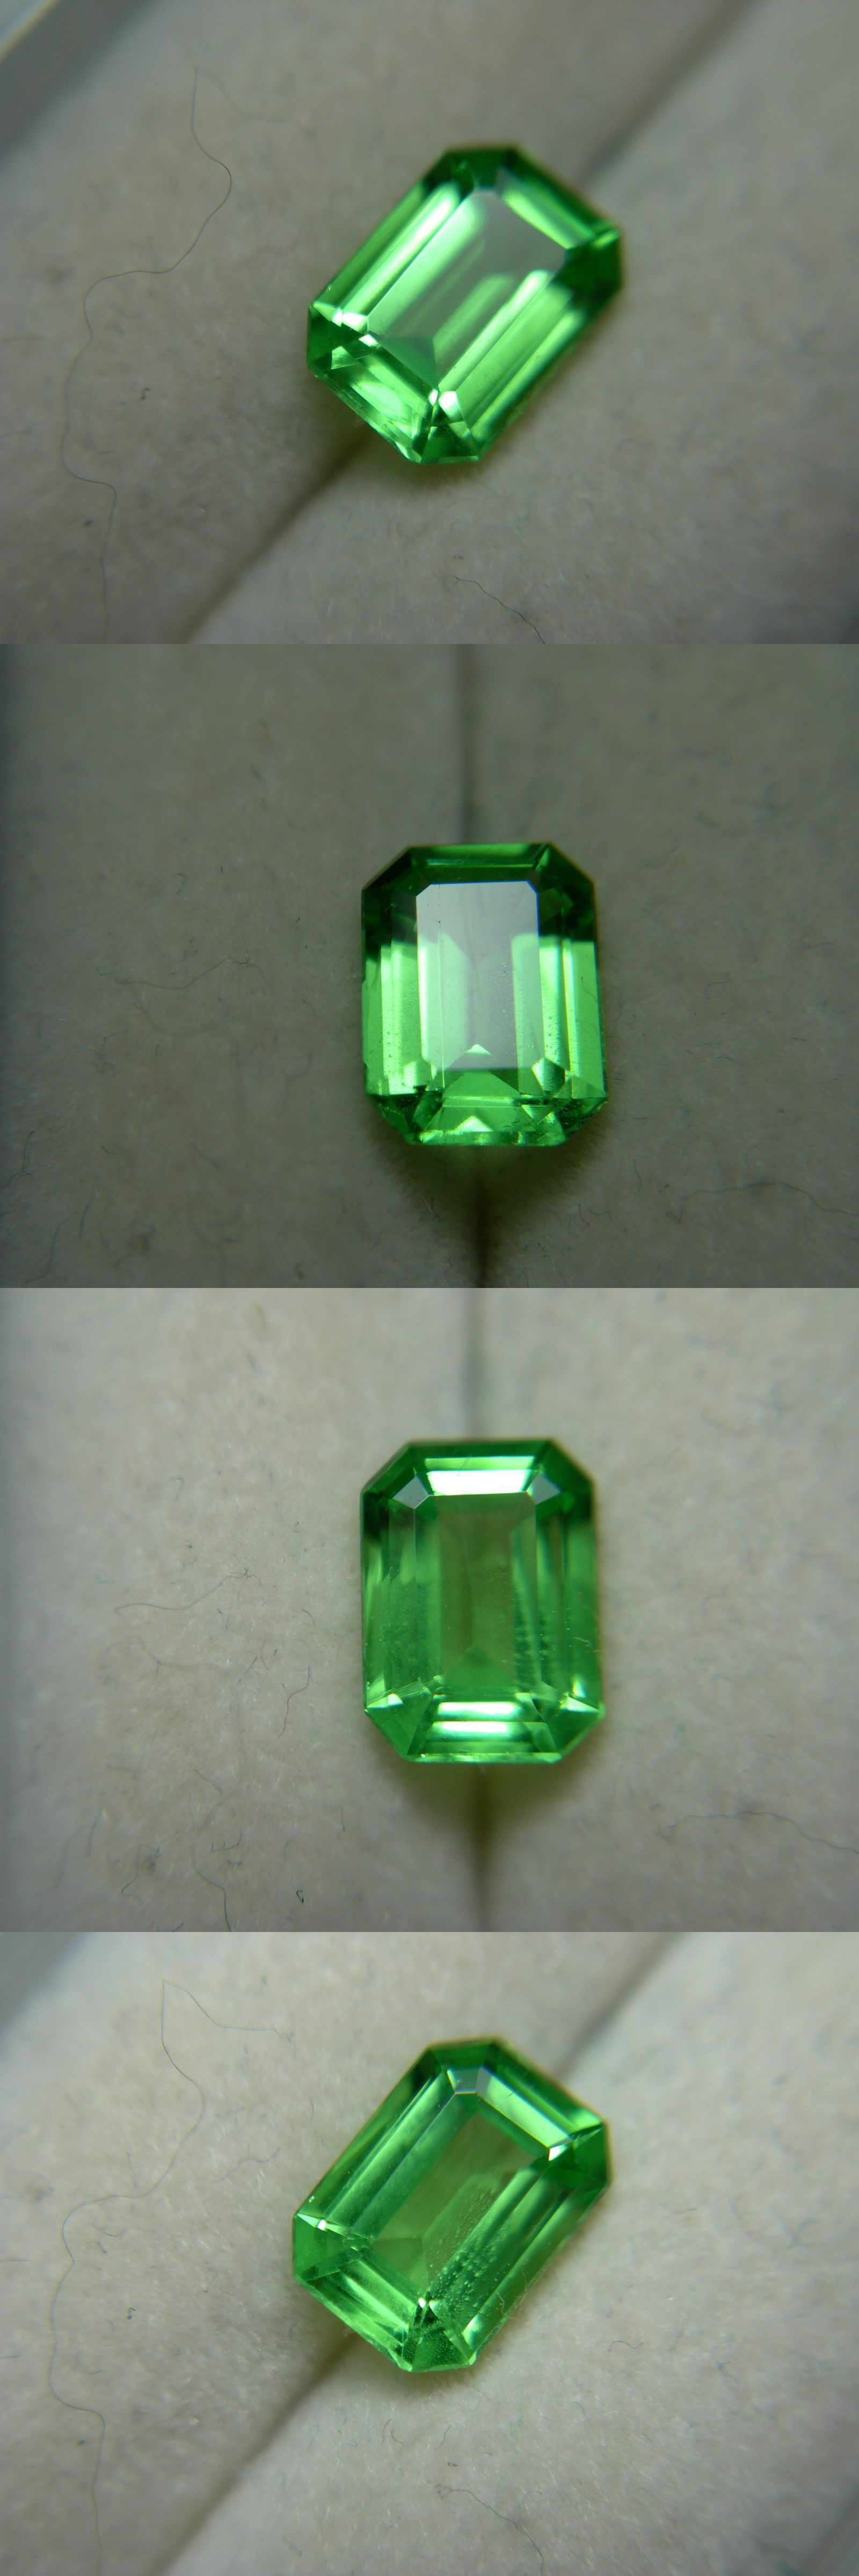 gemstone and gems pinterest minerals my tsavorite favorite garnet pin